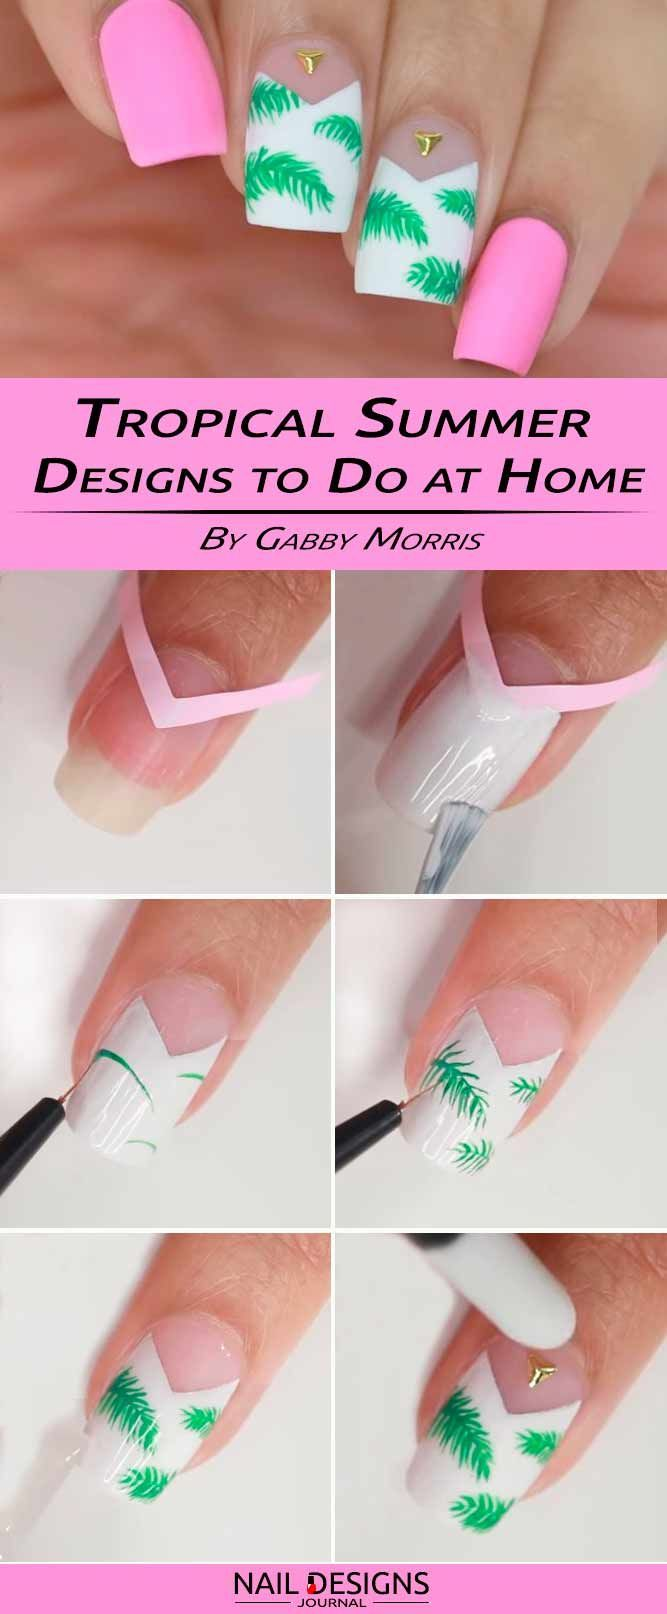 15 Step By Step Tutorials How To Do Nail Designs At Home